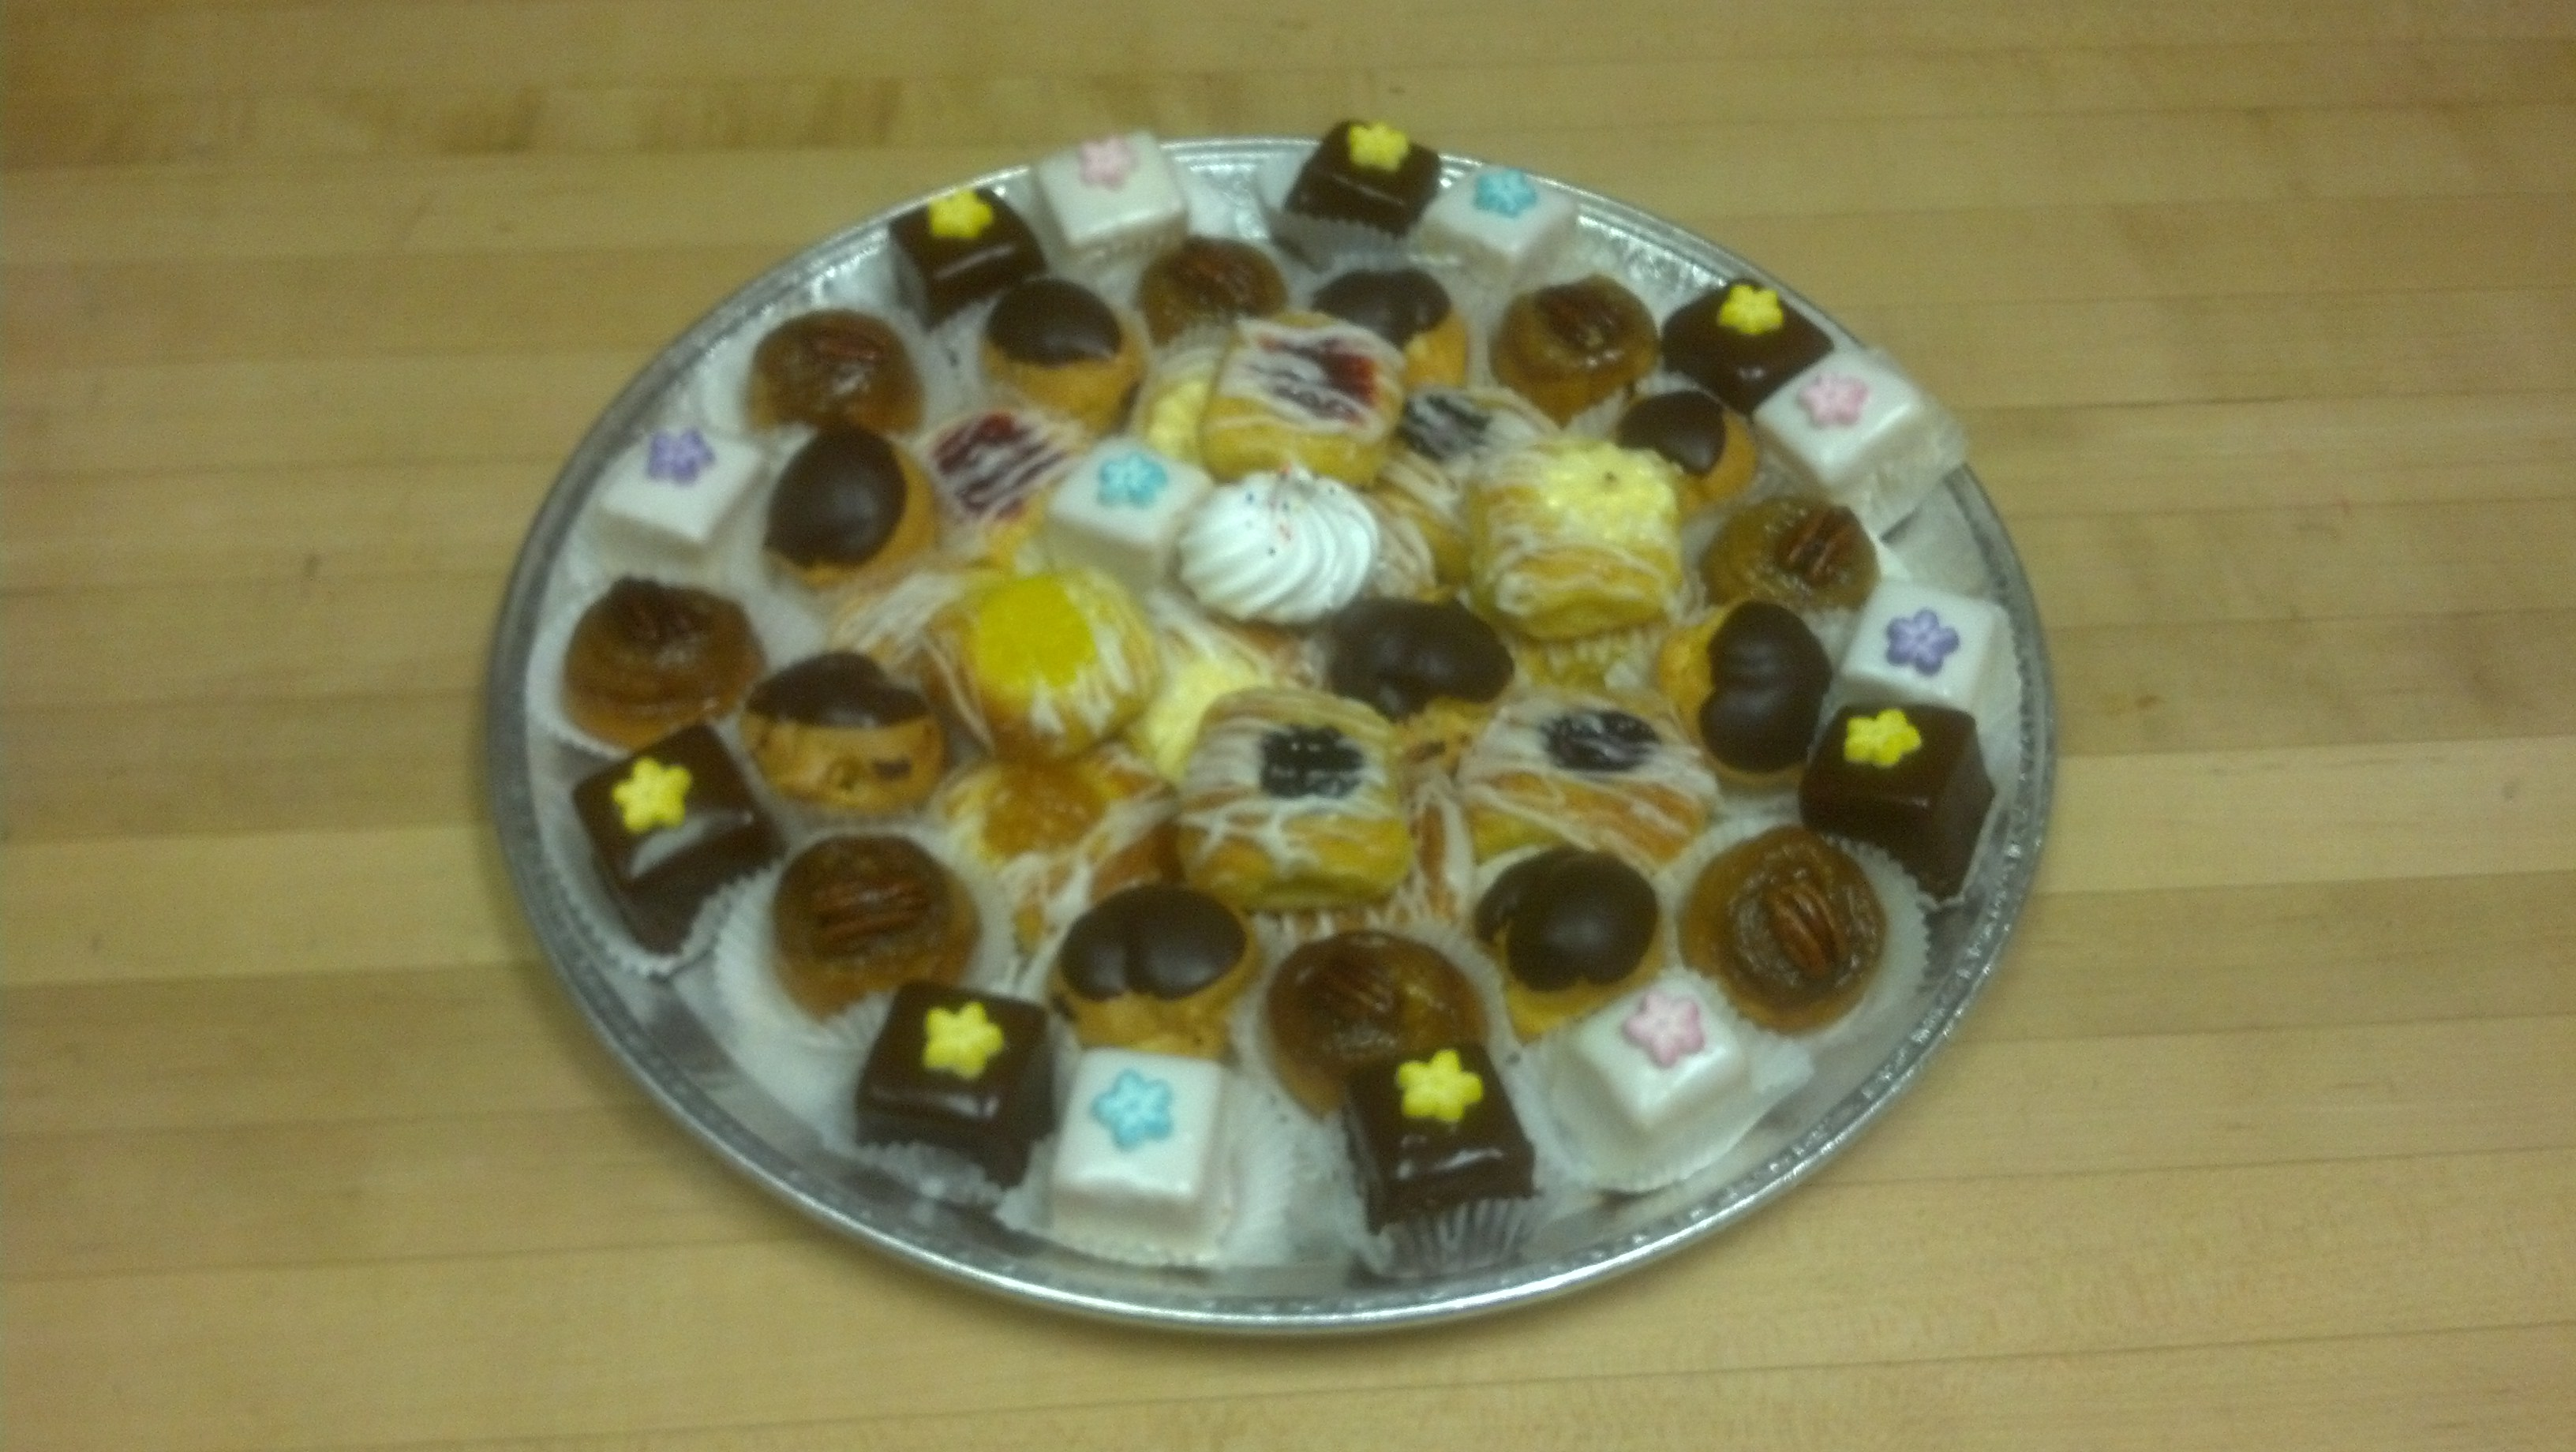 Miniature pastry tray from Mayfair Bakery